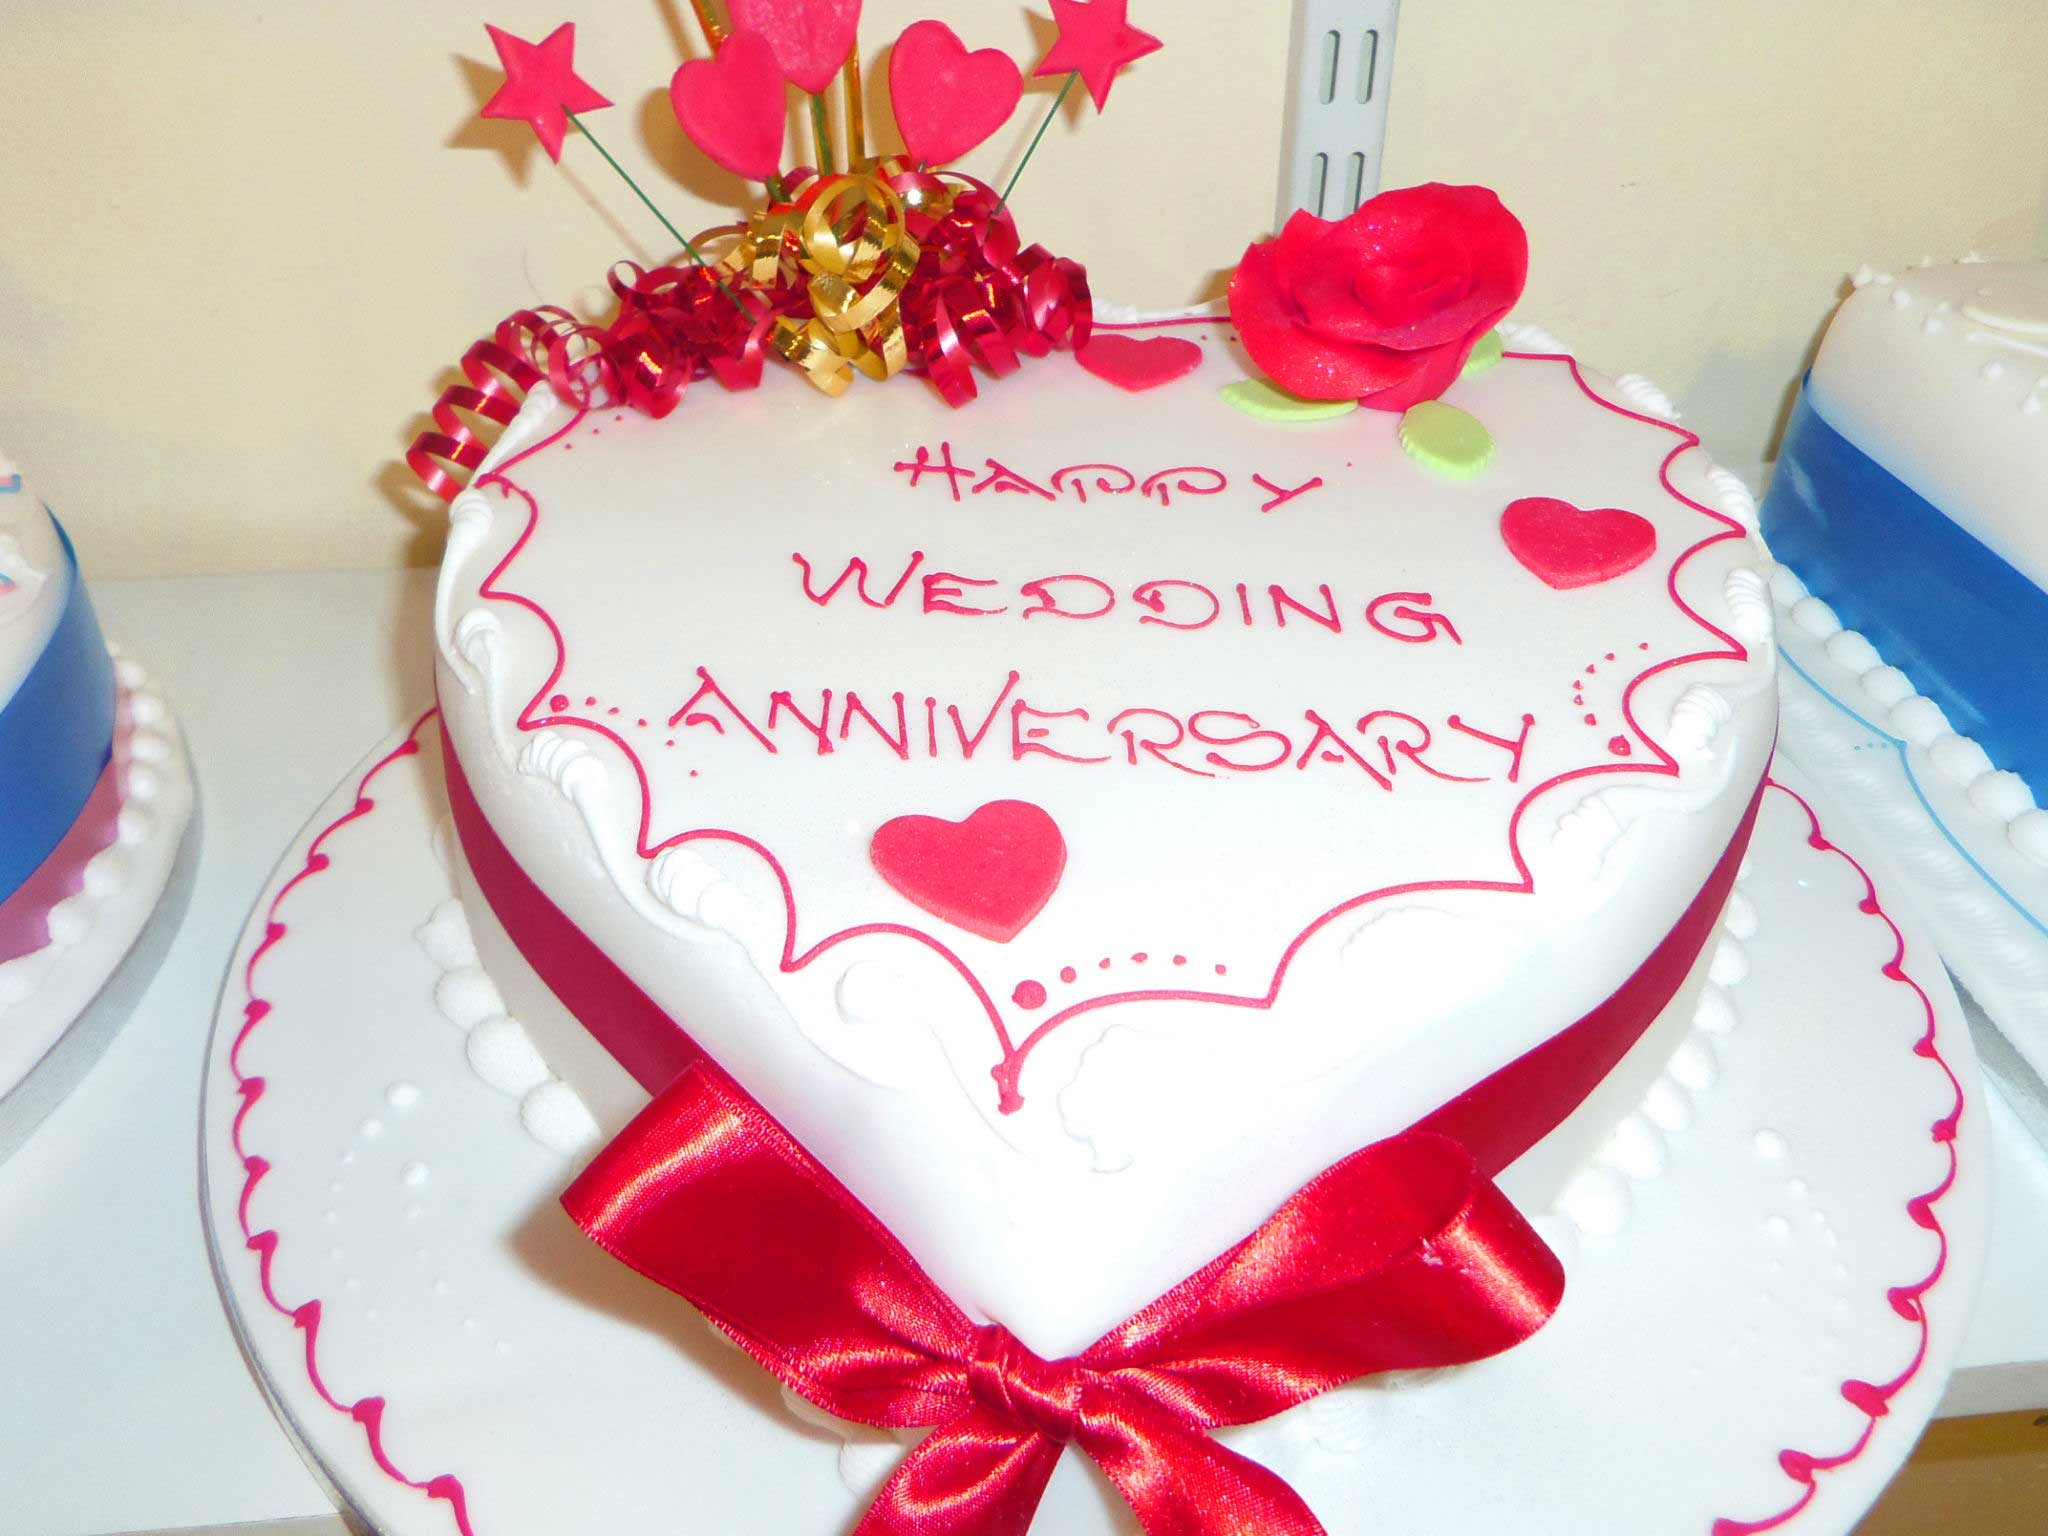 Marriage Anniversary Cake Wallpaper Images Photo Pics Marriage Anniversary Pics Download 69479 Hd Wallpaper Backgrounds Download